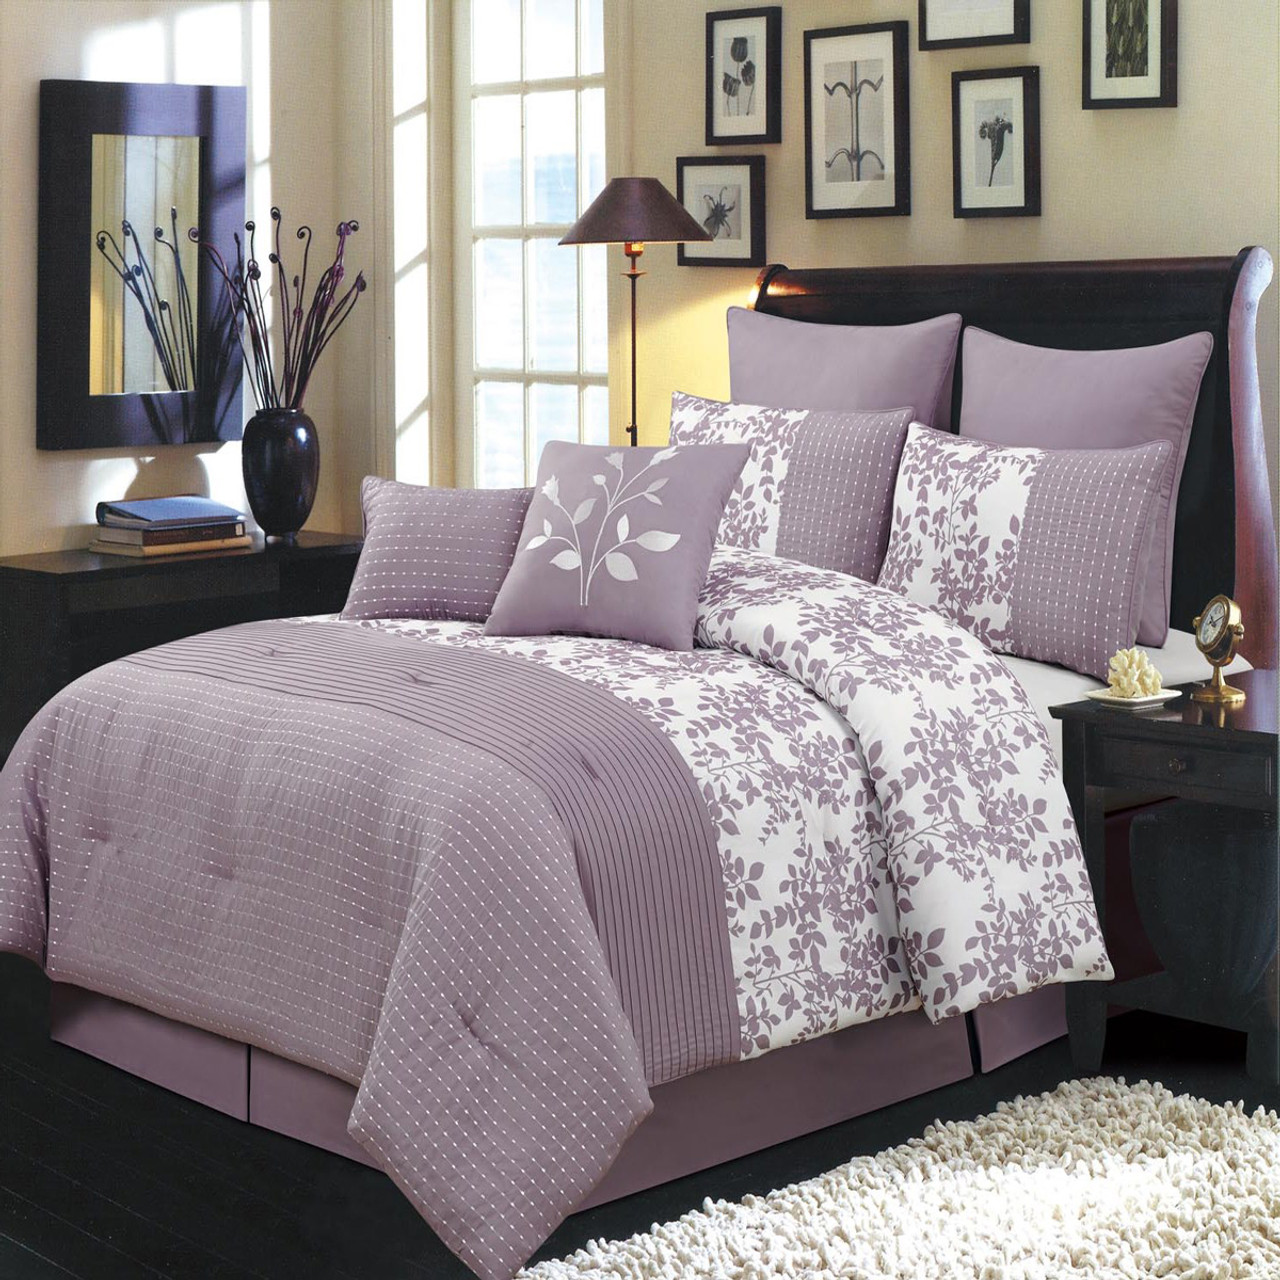 12 Piece Bliss Purple Bed In A Bag Bedding Set Wholesalebeddings Com